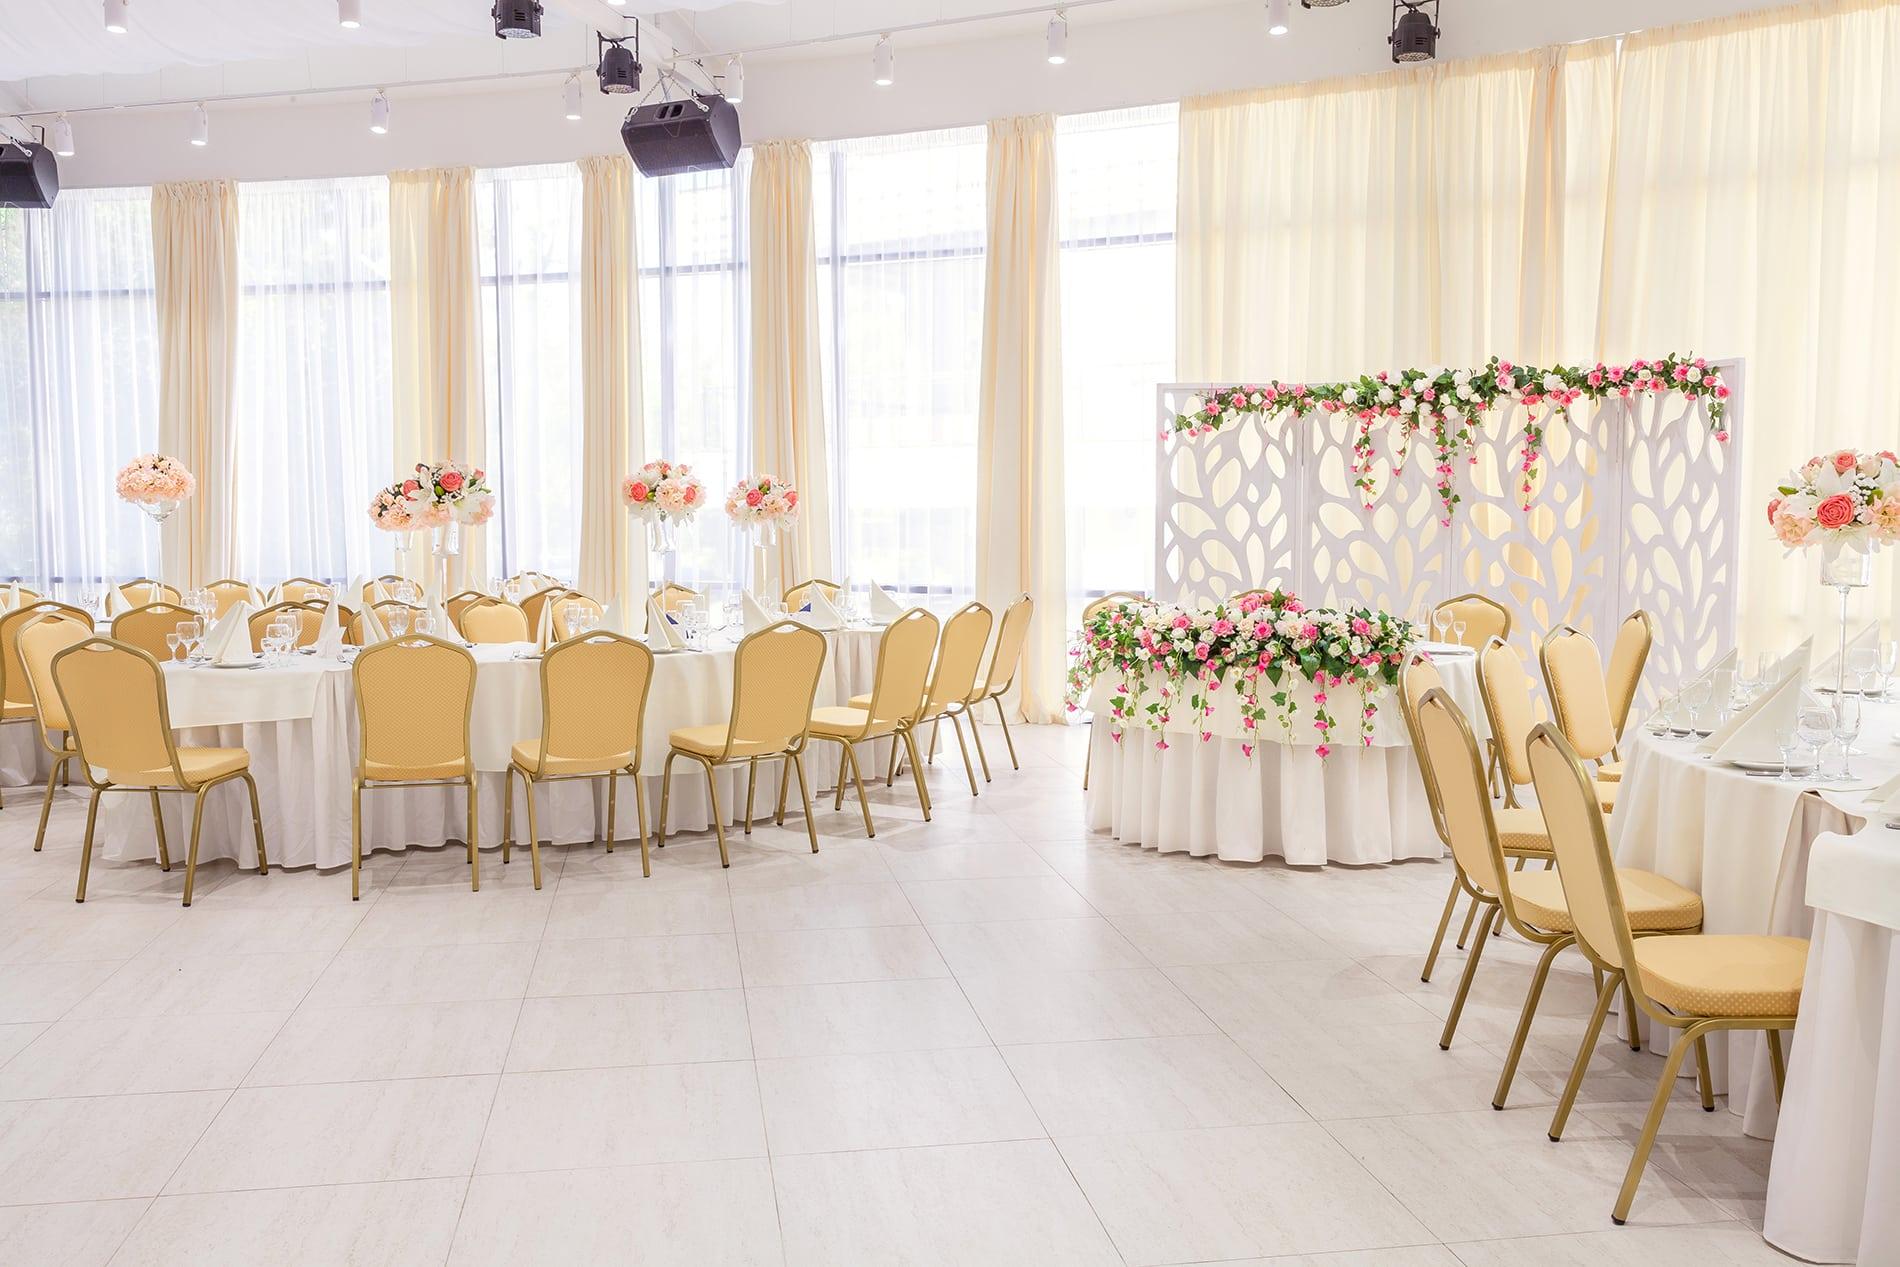 Beautifully decorated room with covered tables with flowers in the restaurant for the celebration of the wedding.